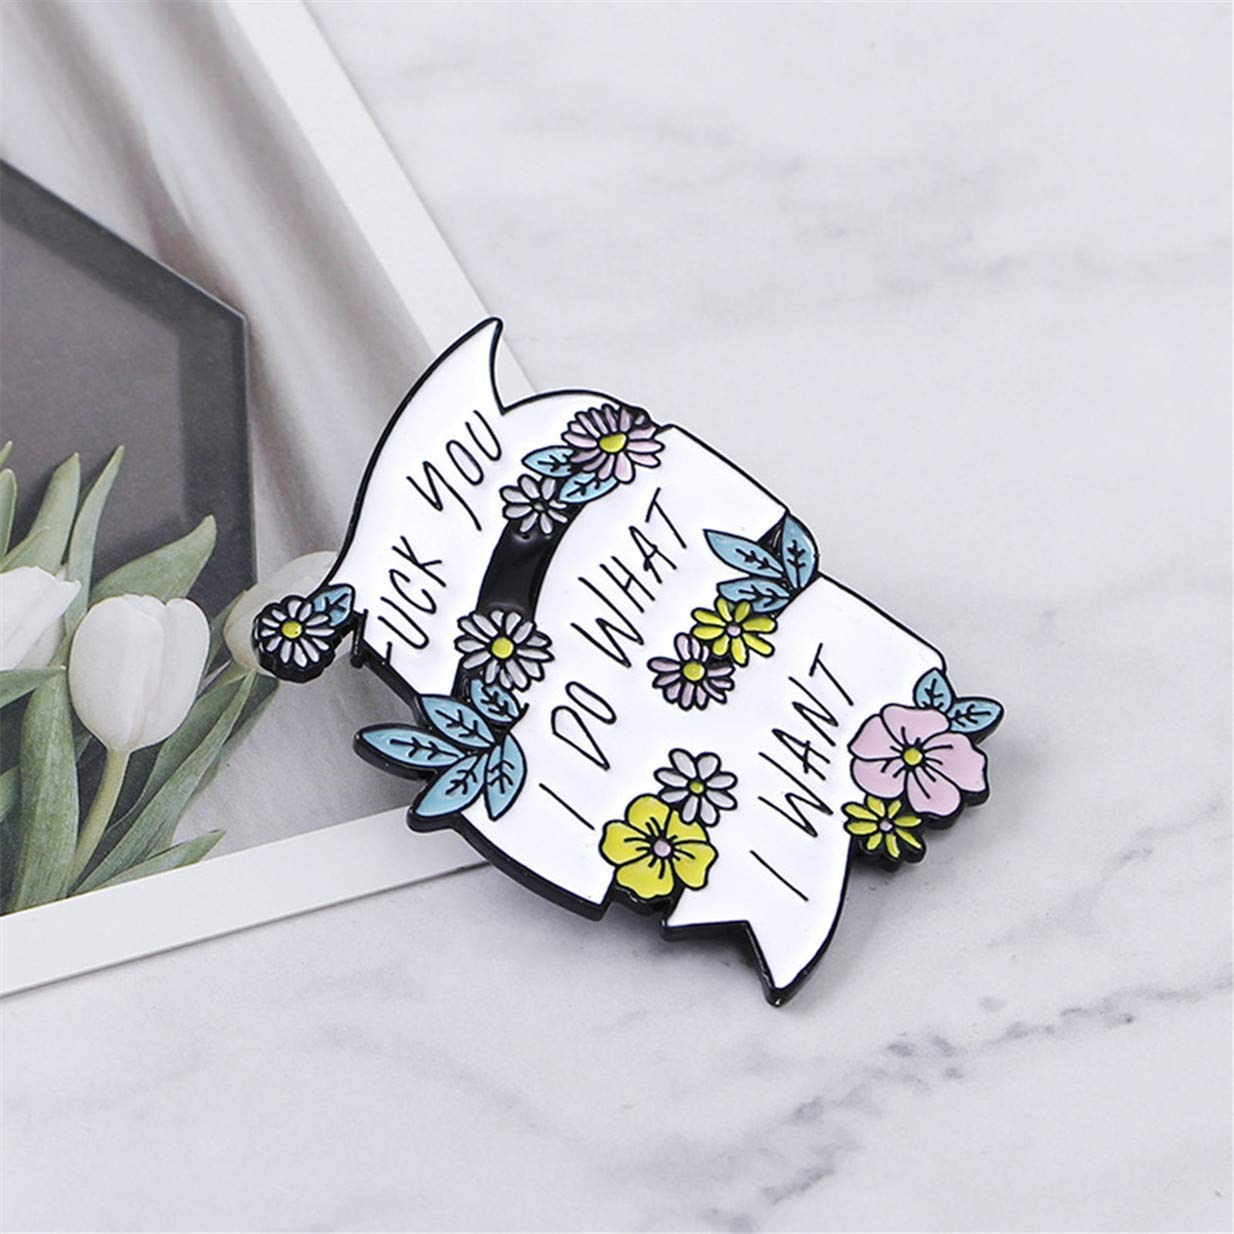 Tcplyn  Cartoon Plant Flower Lettering Enamel Pin Collar Lapel Brooch Badge Clothing Accessories by Tcplyn (Image #4)